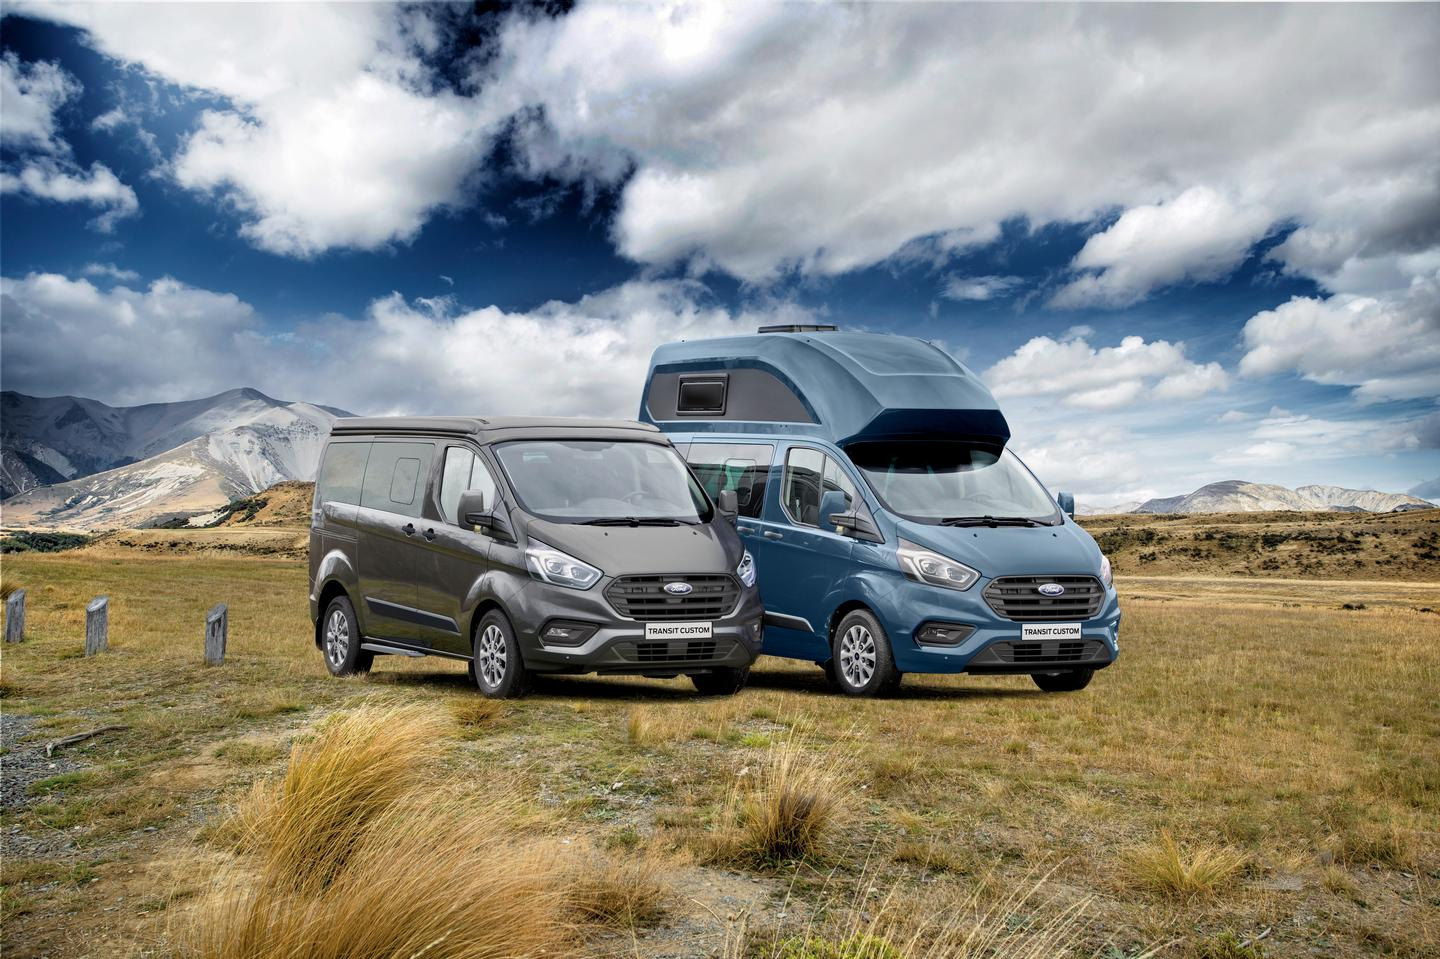 Ford's Nugget camper van family currently includes the high-roof Nugget, pop-top Nugget and high-roof Nugget Plus; the Big Nugget will be the largest member of the family